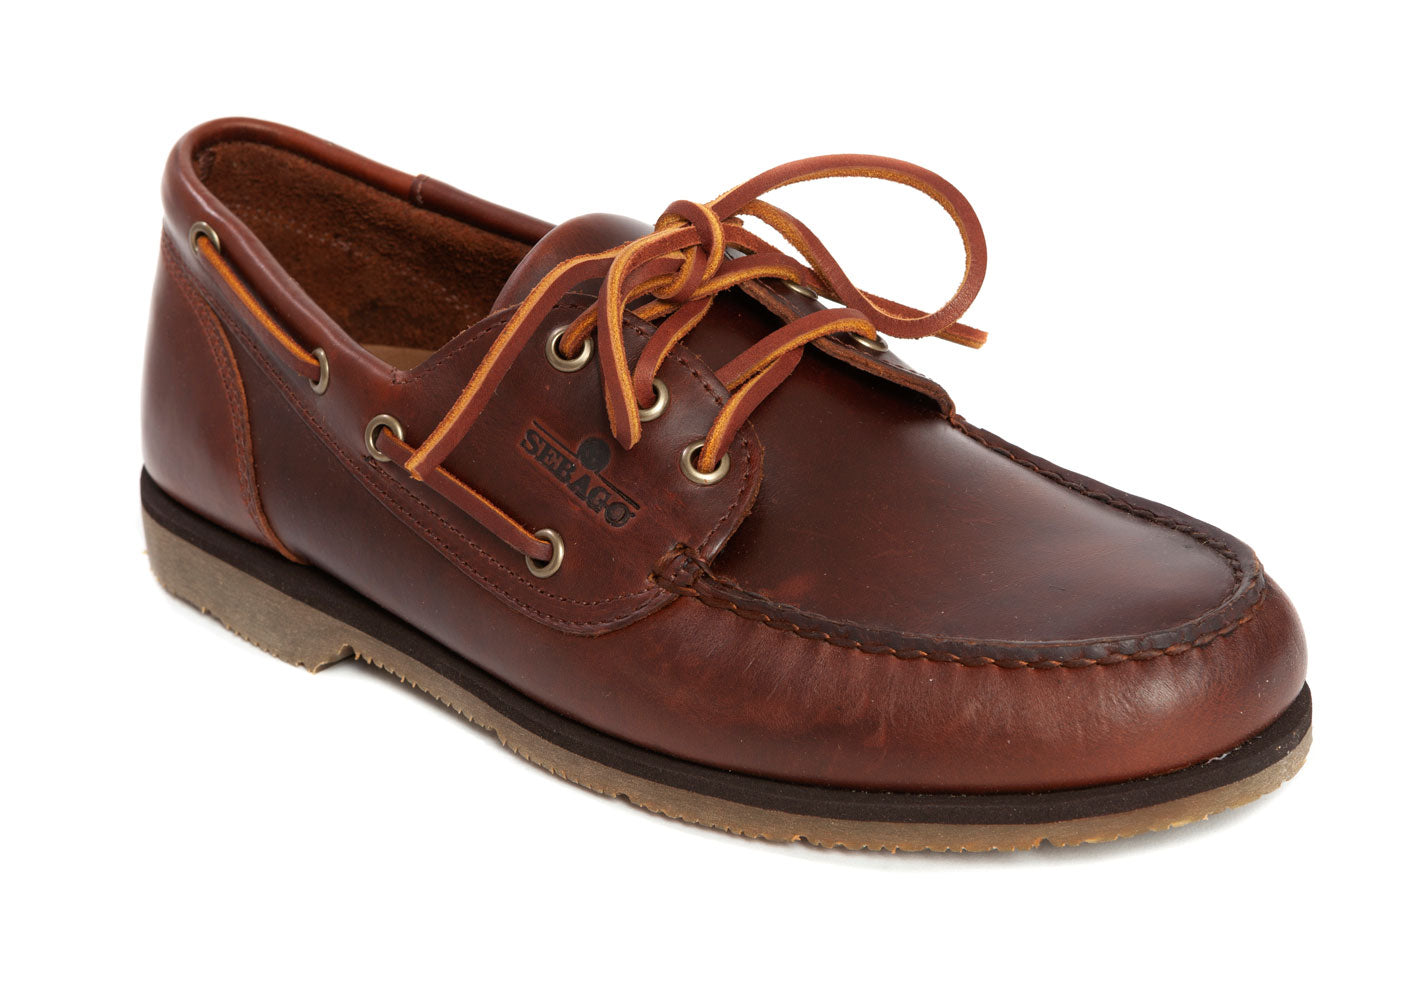 Sebago - Foresider Waxed Leather Boat Shoe - Brown Gum - Regent Tailoring